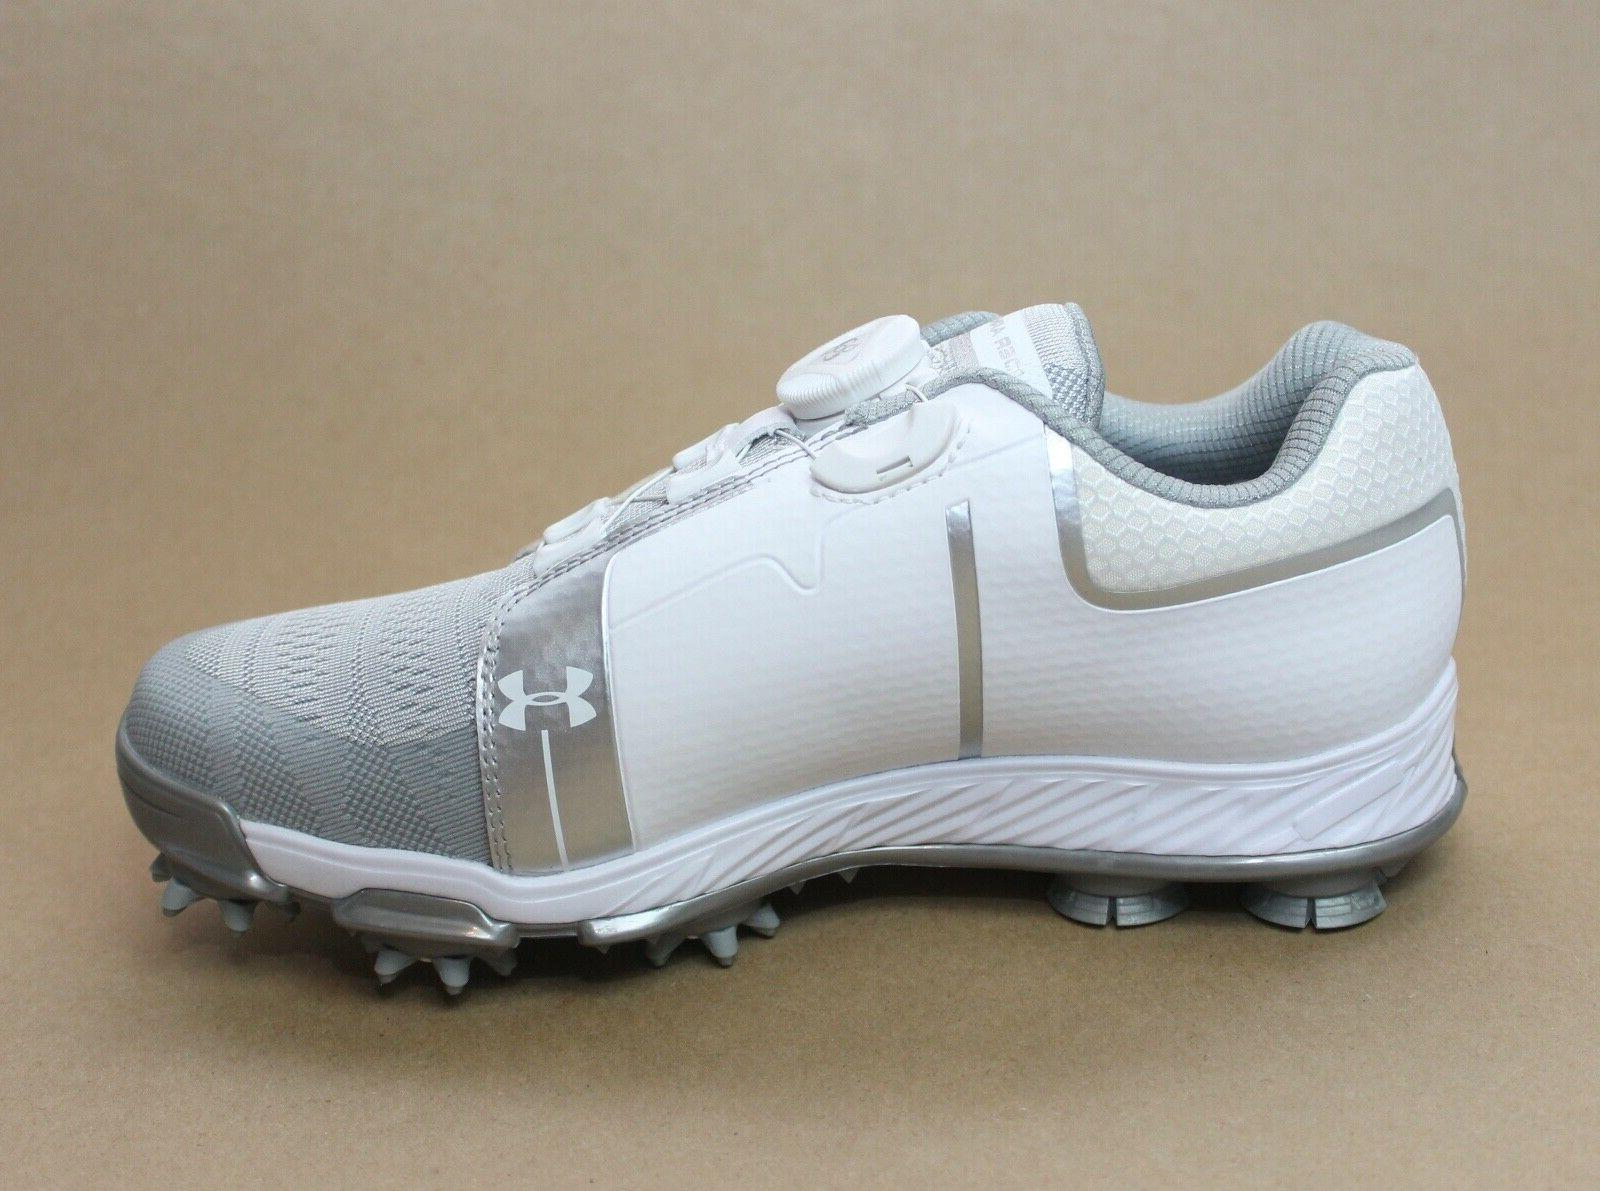 Under Armour Women's W Boa Golf Shoes White Size